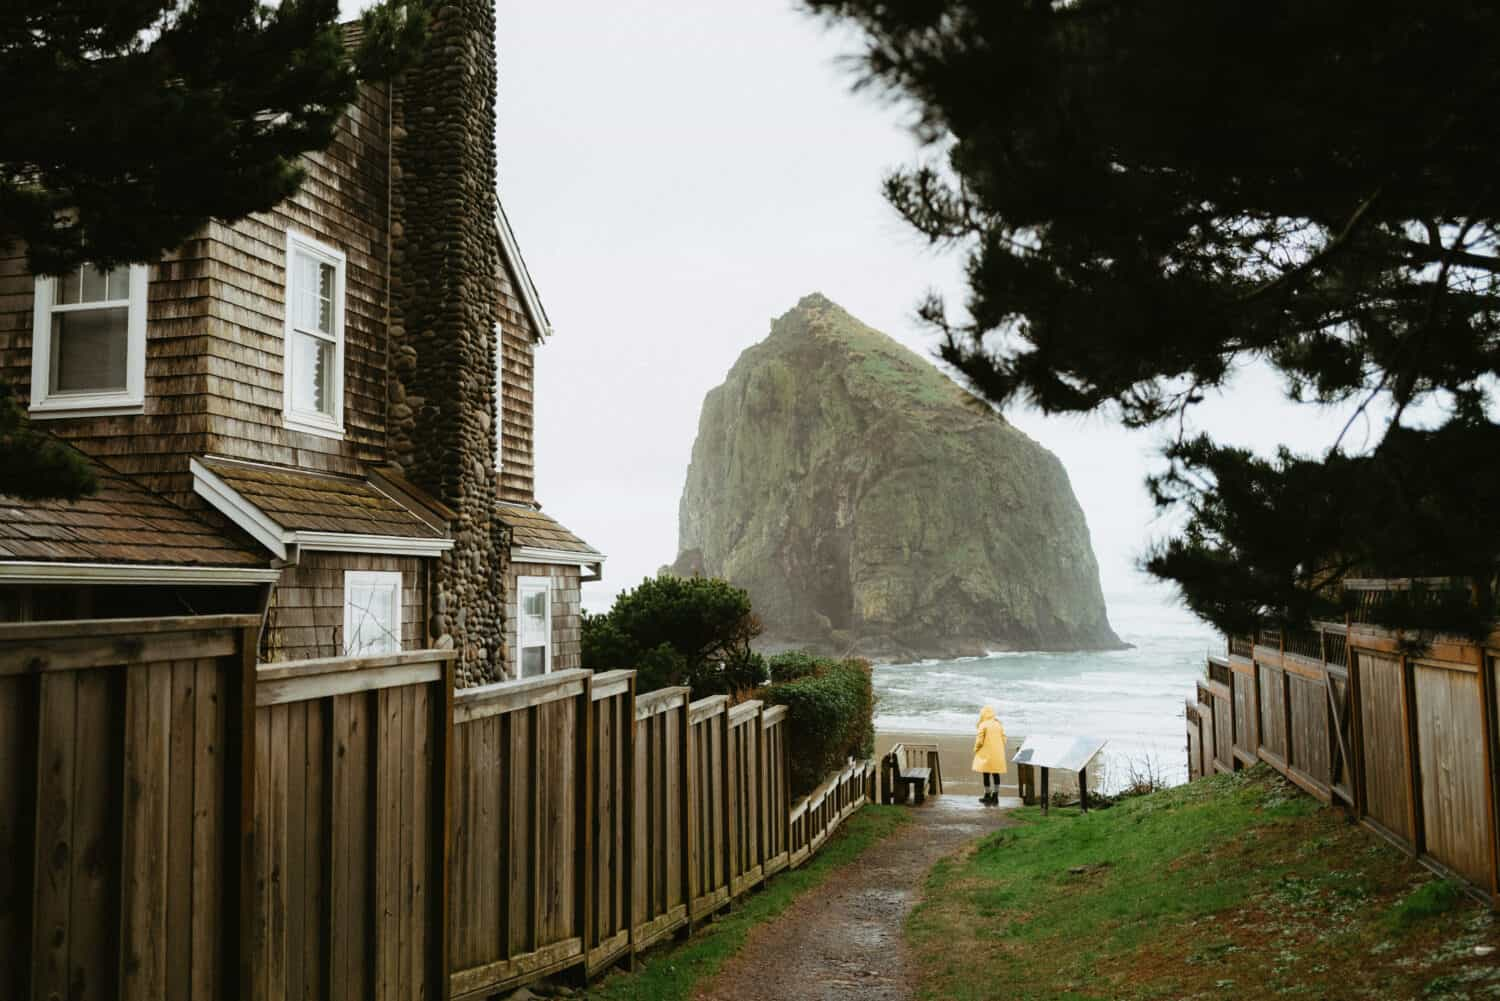 Emily Mandagie at Cannon Beach in Oregon